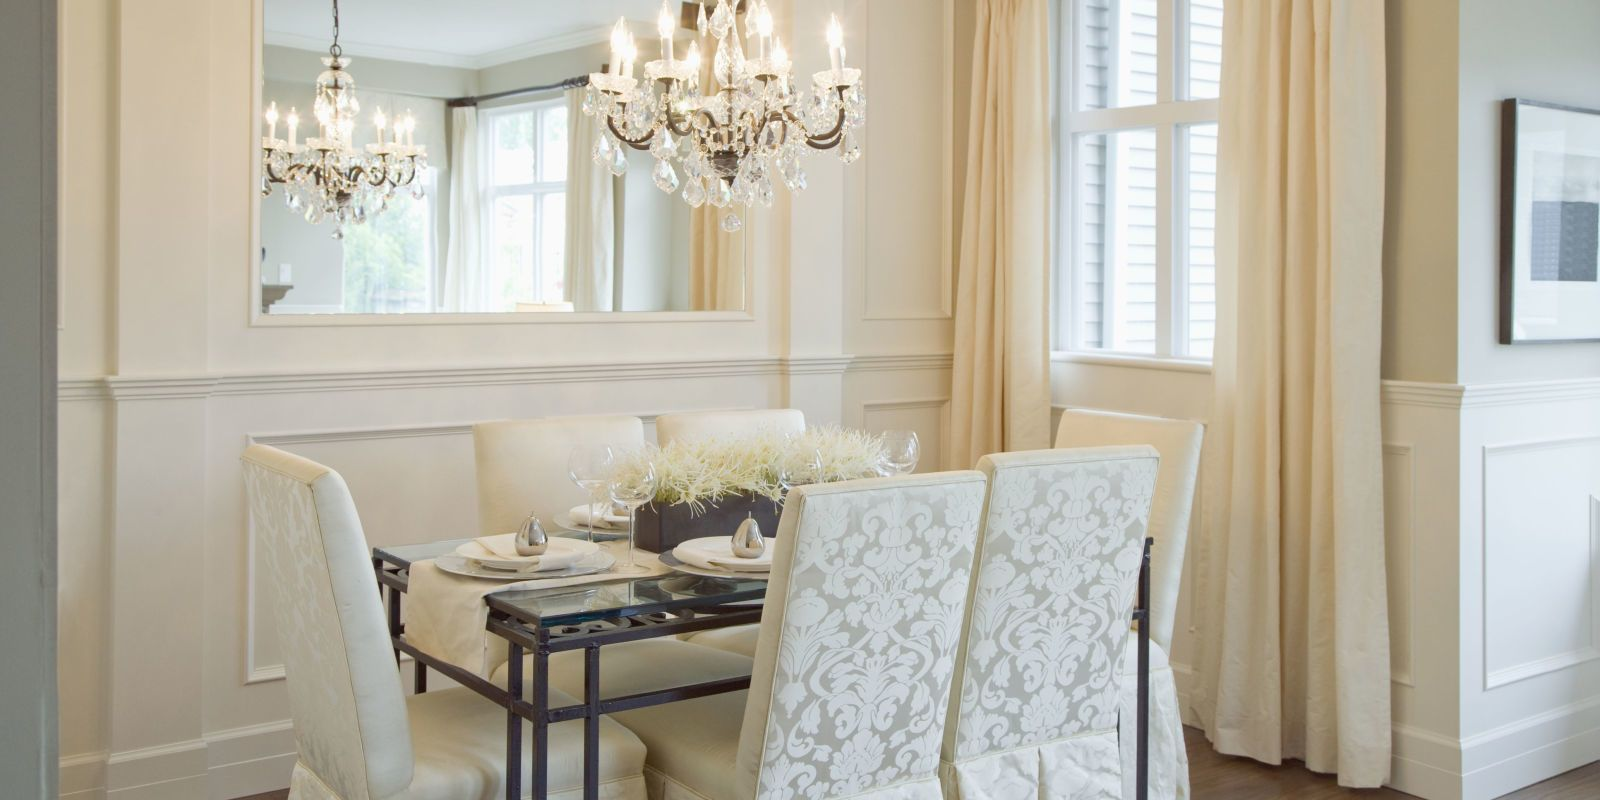 This Simple Dining Room Decorating Trick Will Help You Avoid Overeating